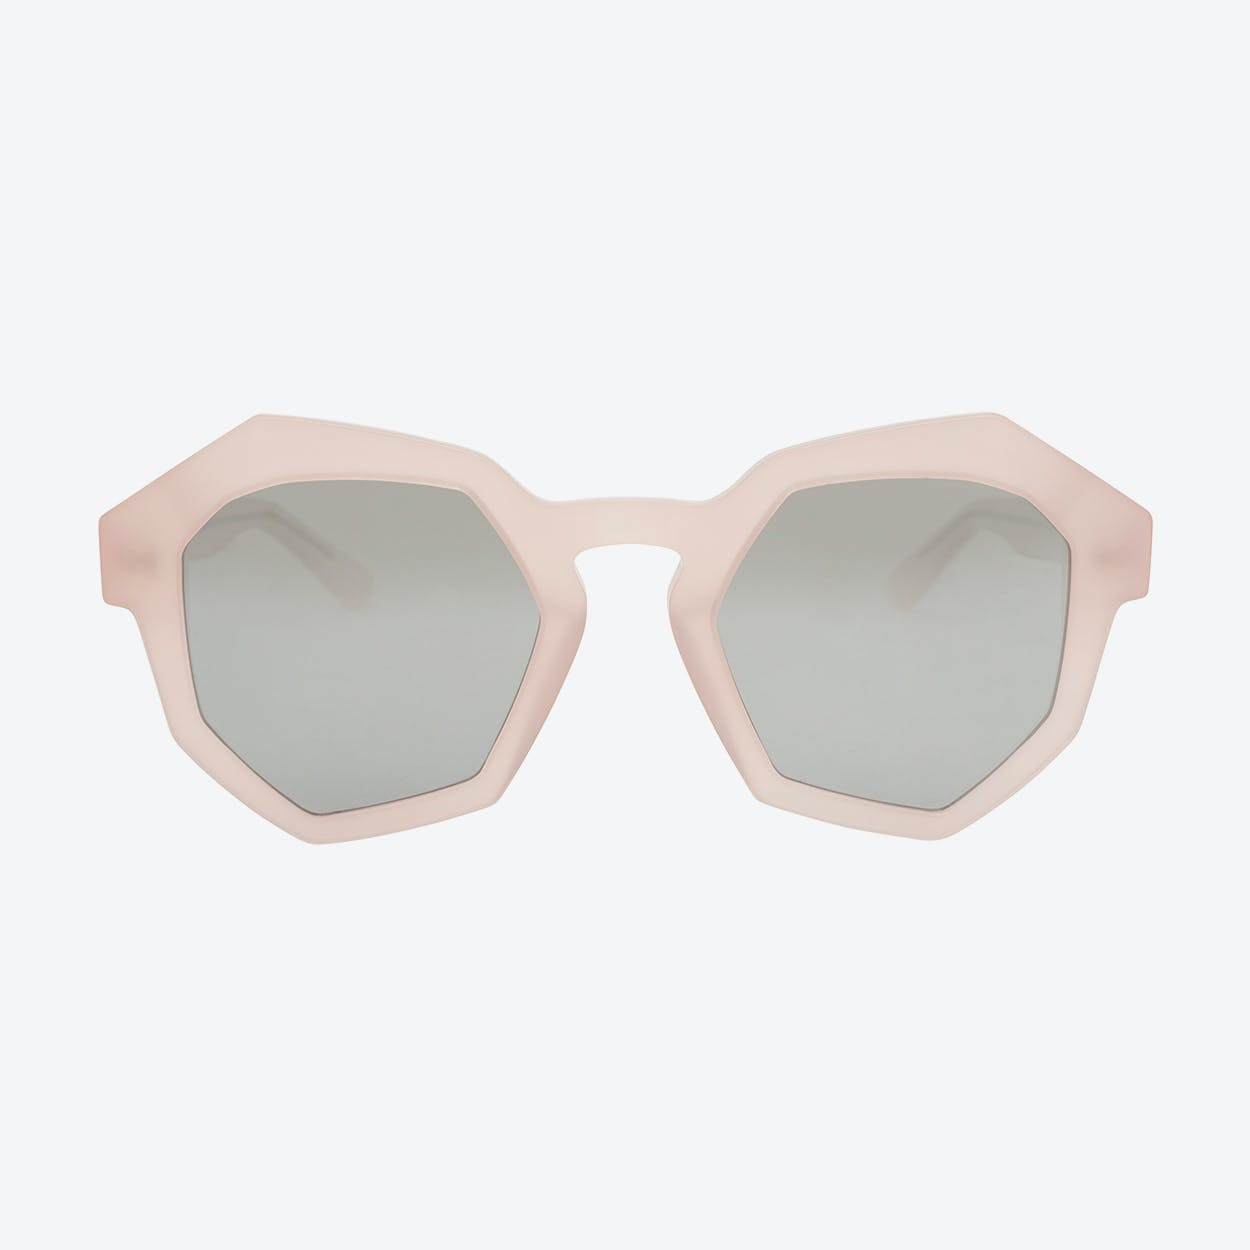 Hoxton Sunglasses in Pink